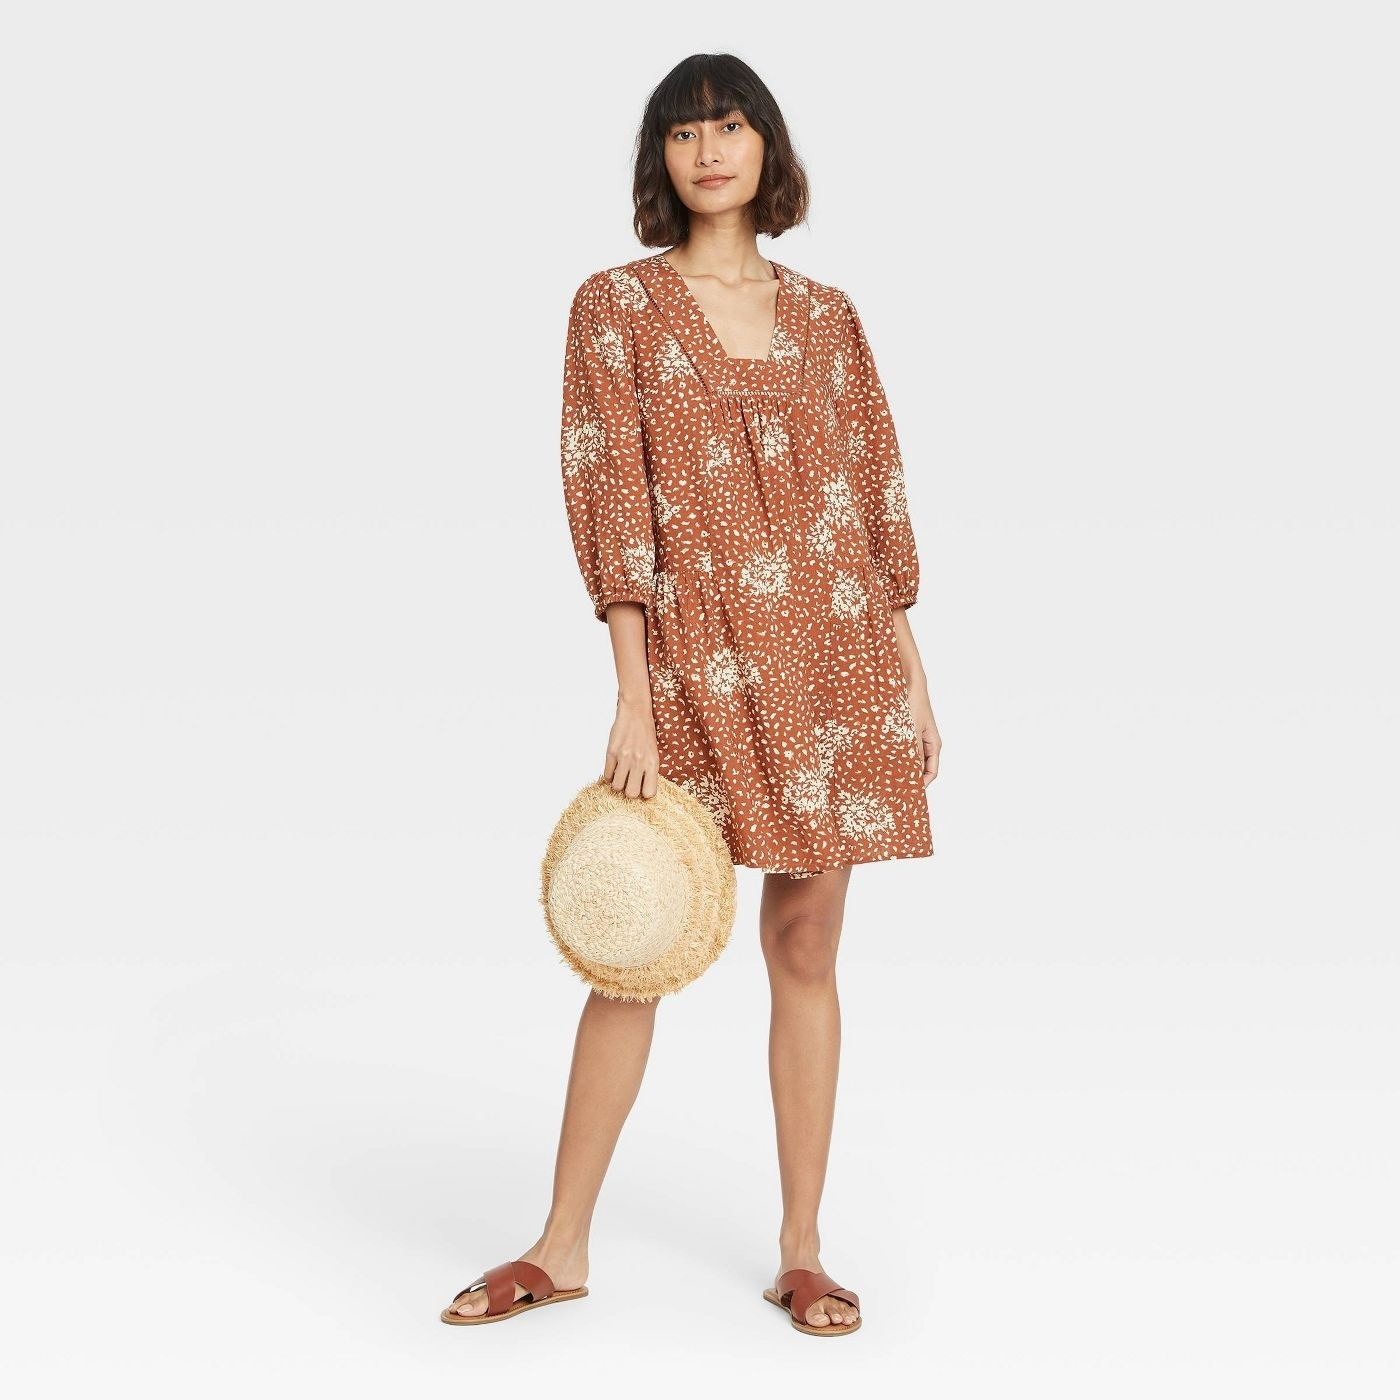 Model wearing dress with cream pattern, stops above the knee